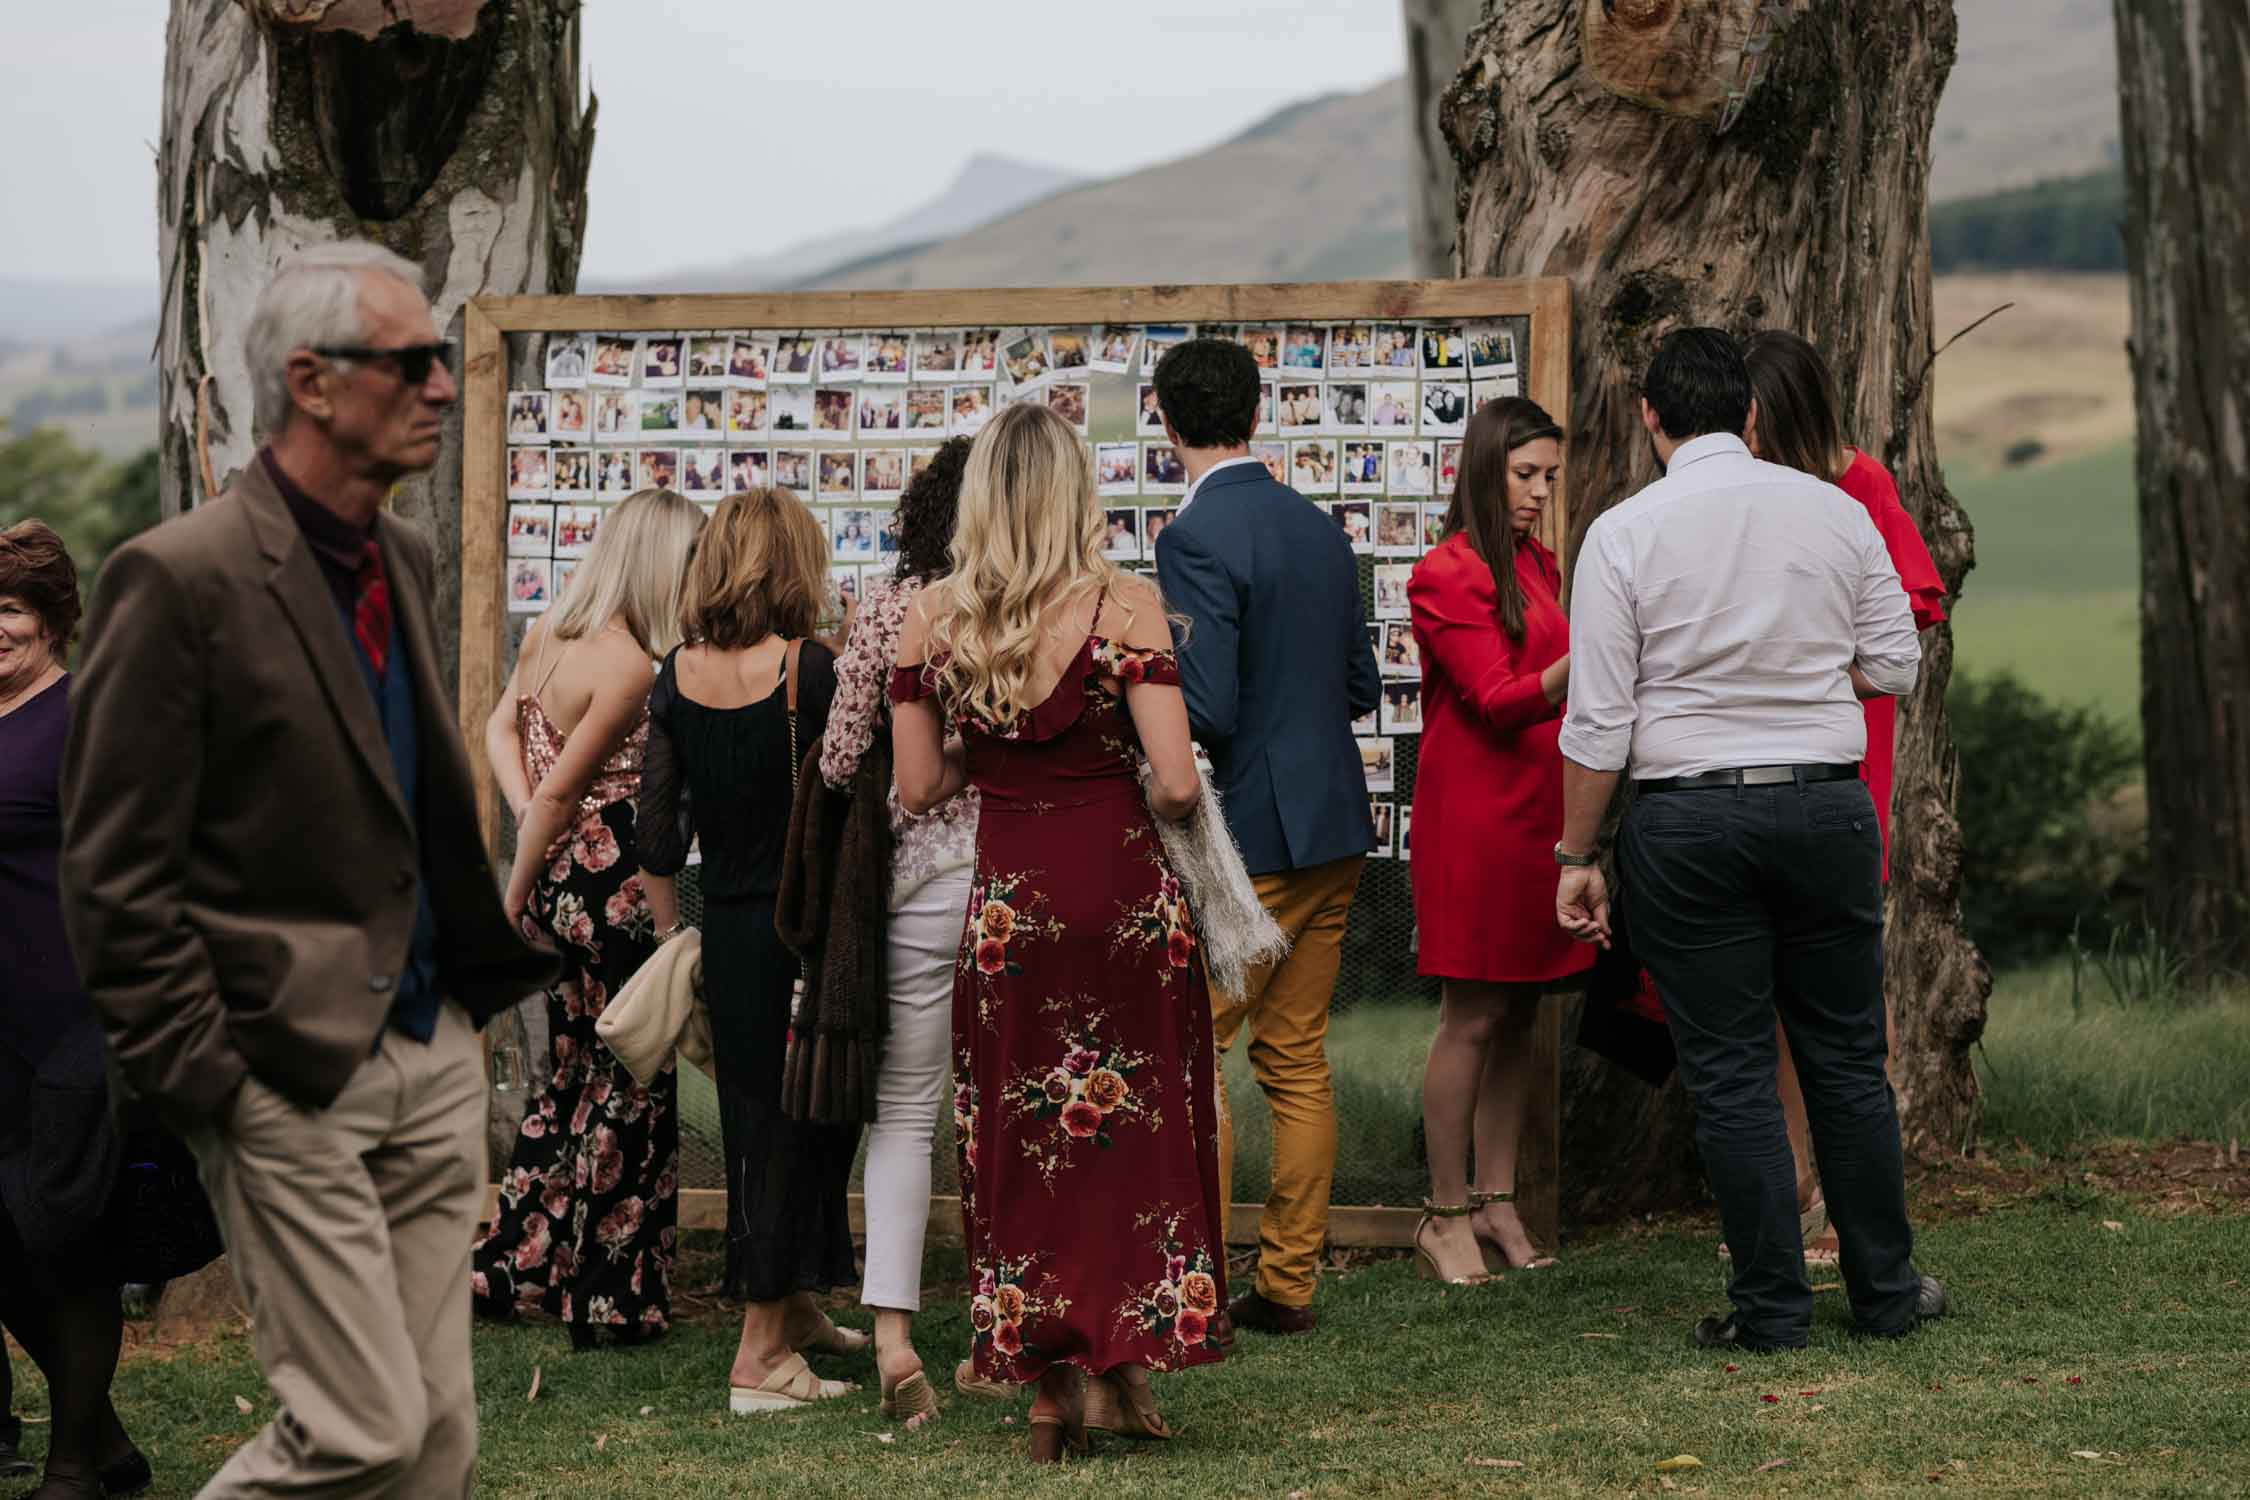 Guests looking at the seating chart at a wedding. The seating chart is made up of photographs of each guest pegged onto a wood and wire frame.